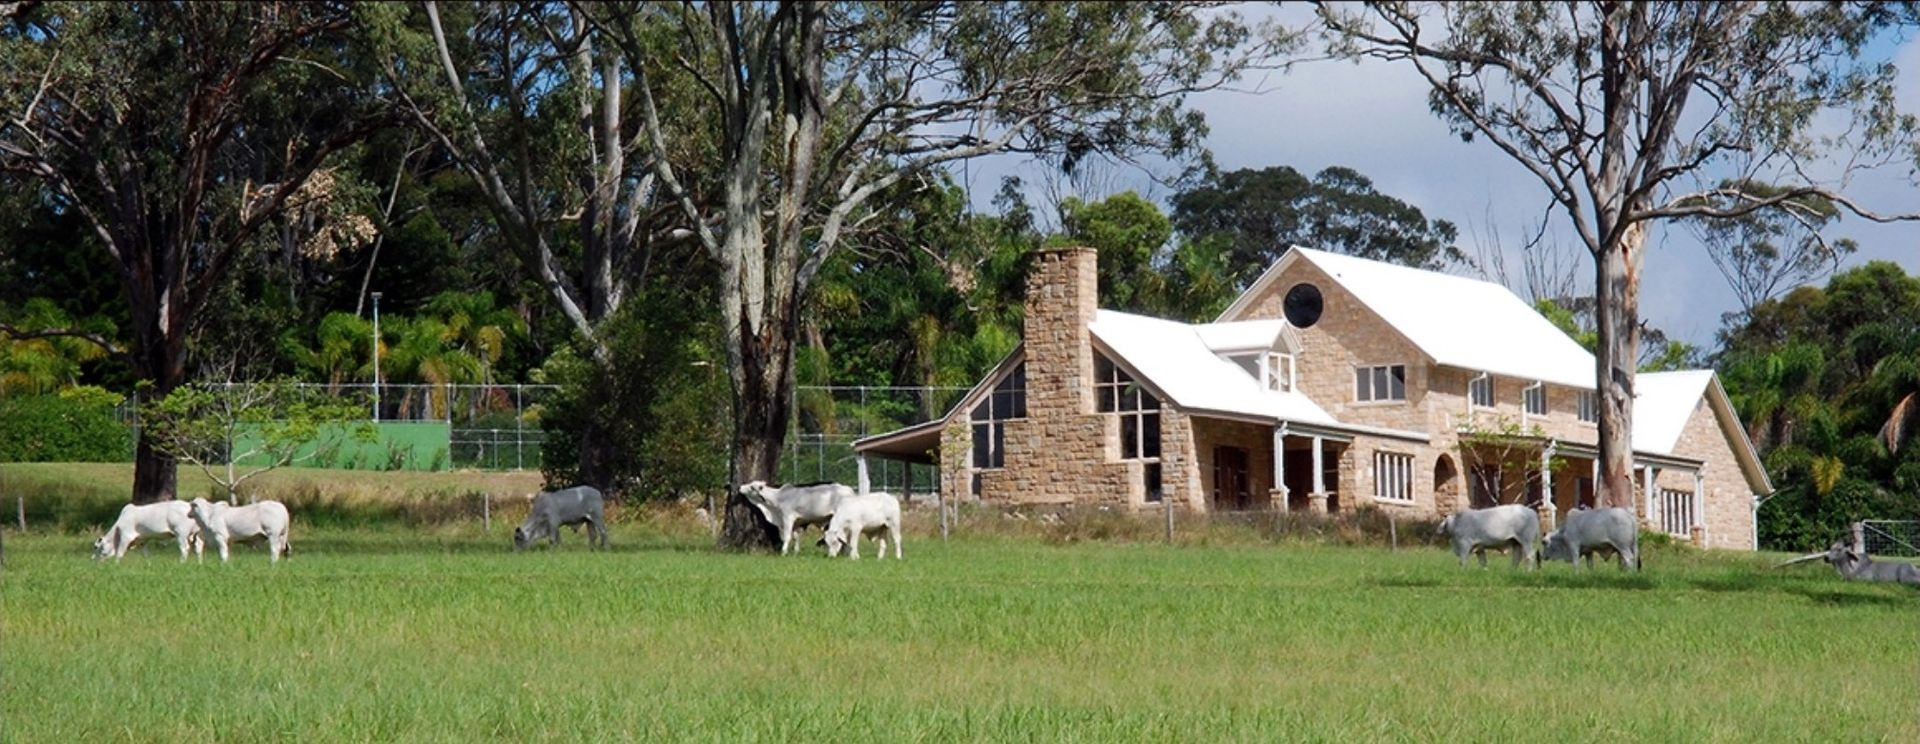 210 Kerry West Road, Kerry QLD 4285, Image 0